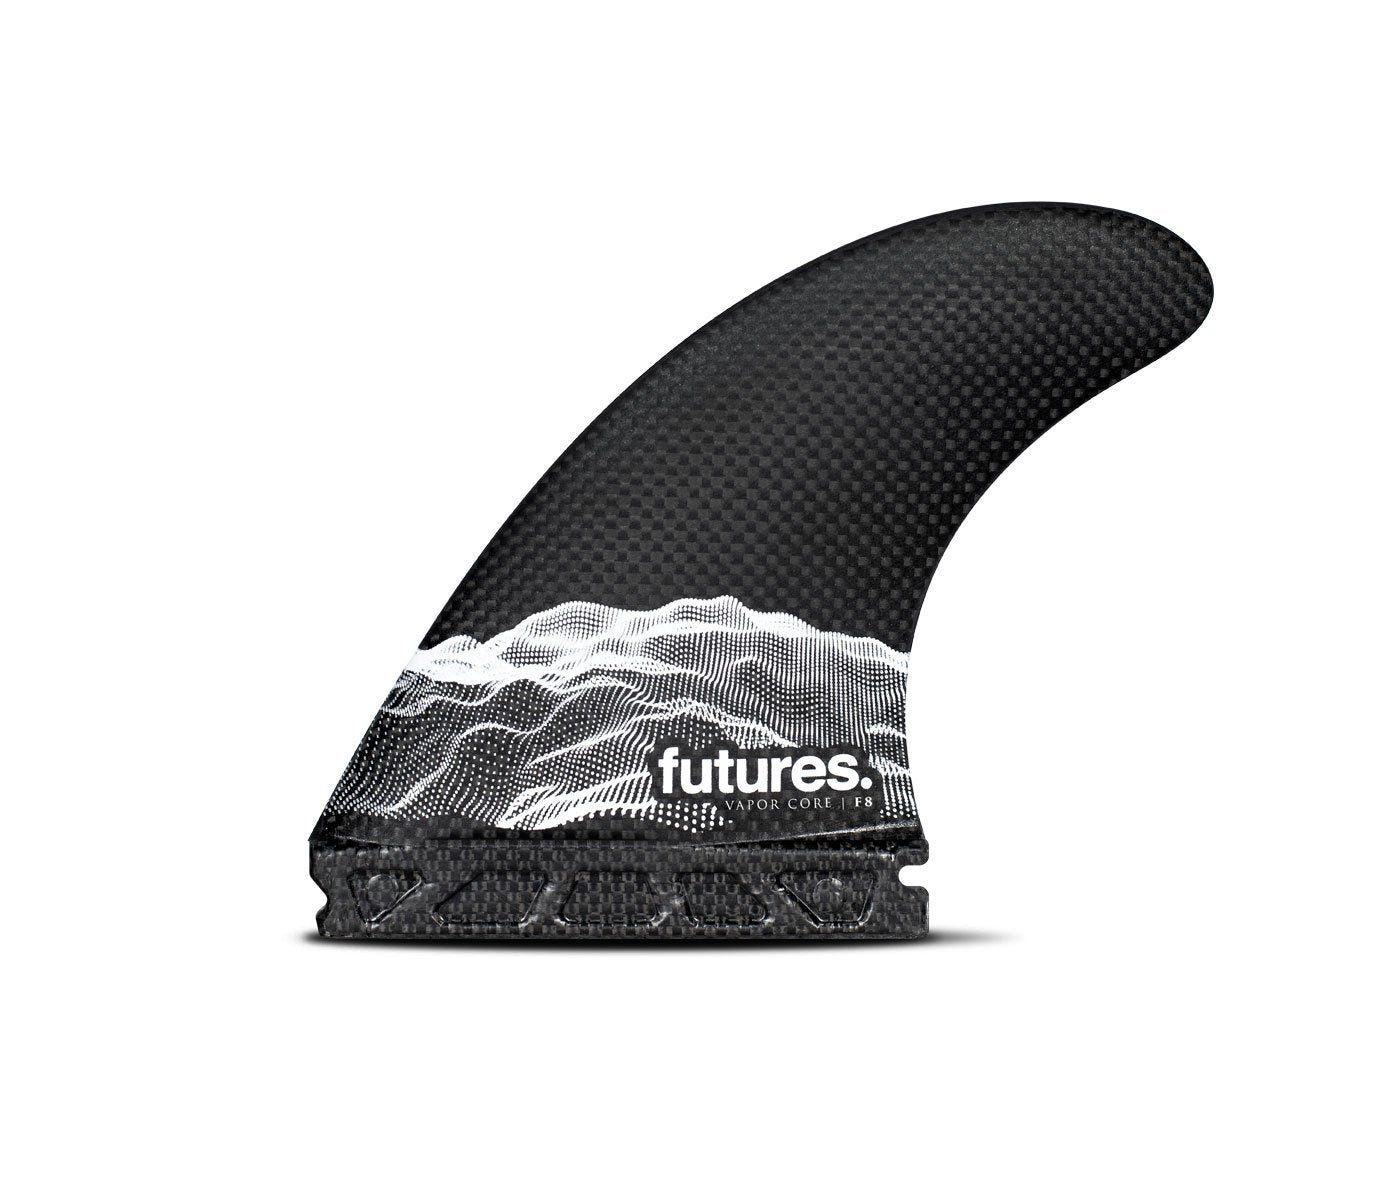 FUTURES VAPOR CORE l F8 LARGE TRI SET